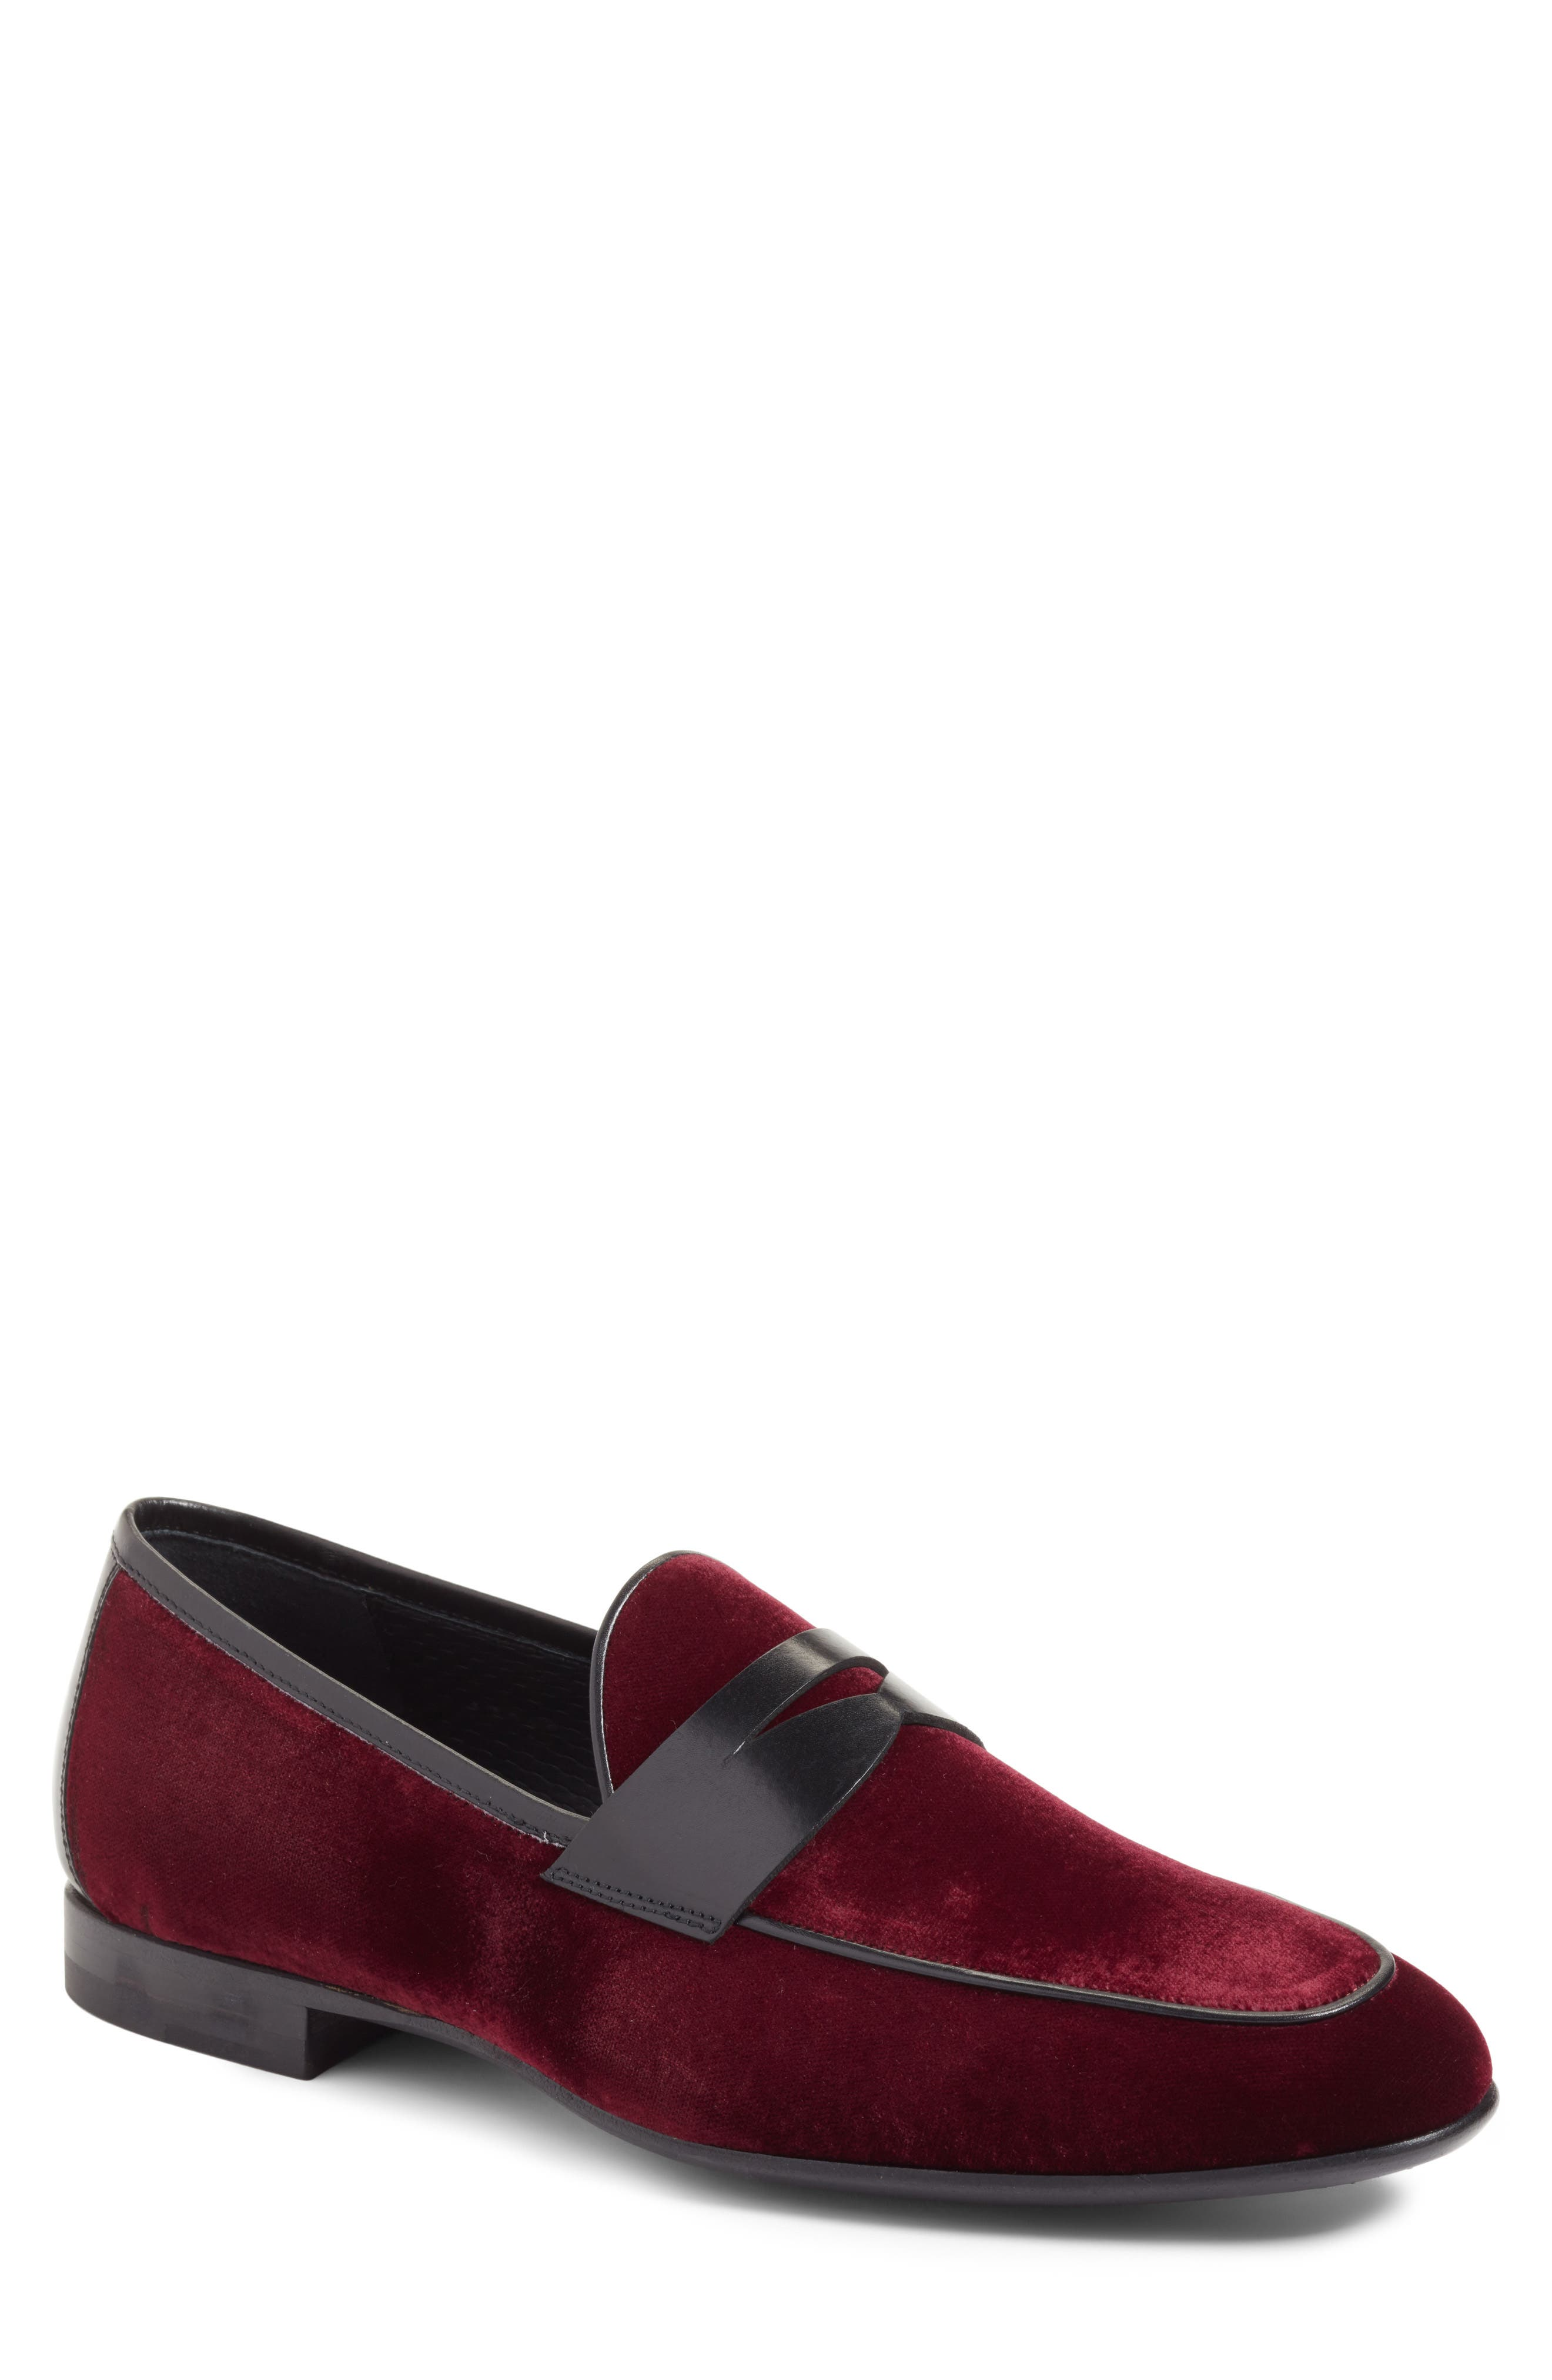 Dorado Penny Loafer,                         Main,                         color, BURGUNDY